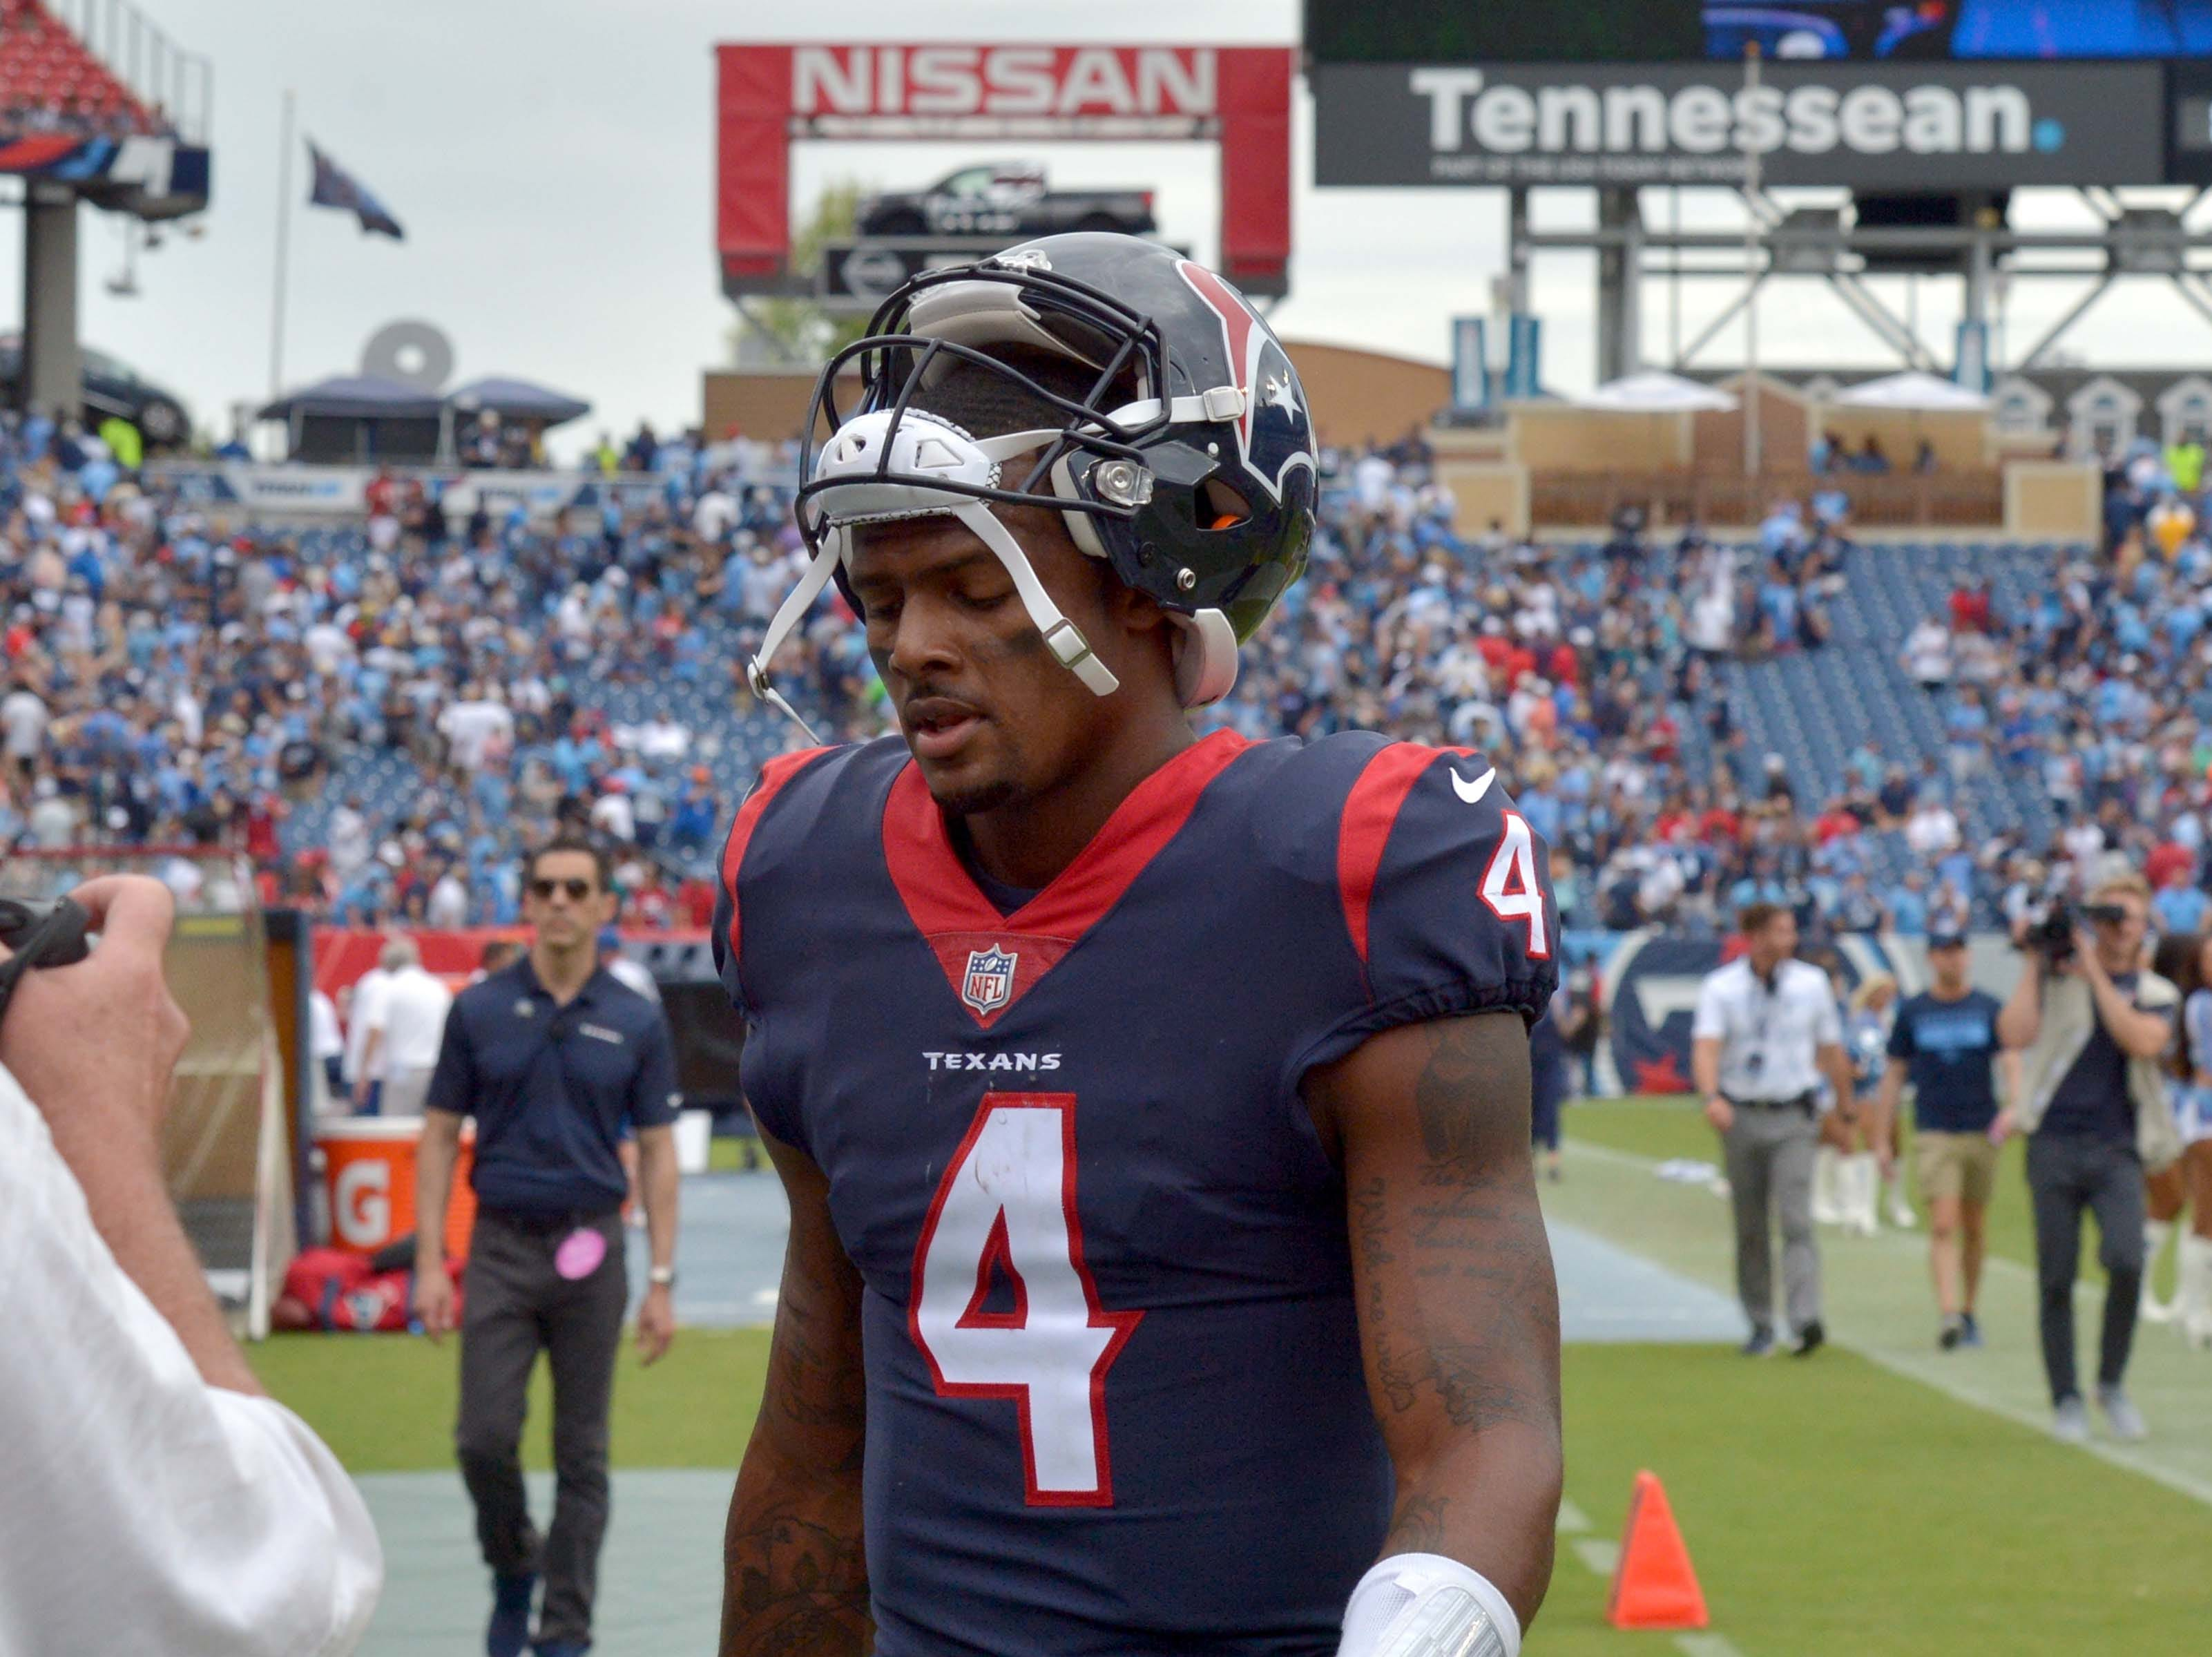 Houston Texans quarterback Deshaun Watson (4) leaves the field after his team's loss to the Tennessee Titans on Sunday in Nashville, Tenn.